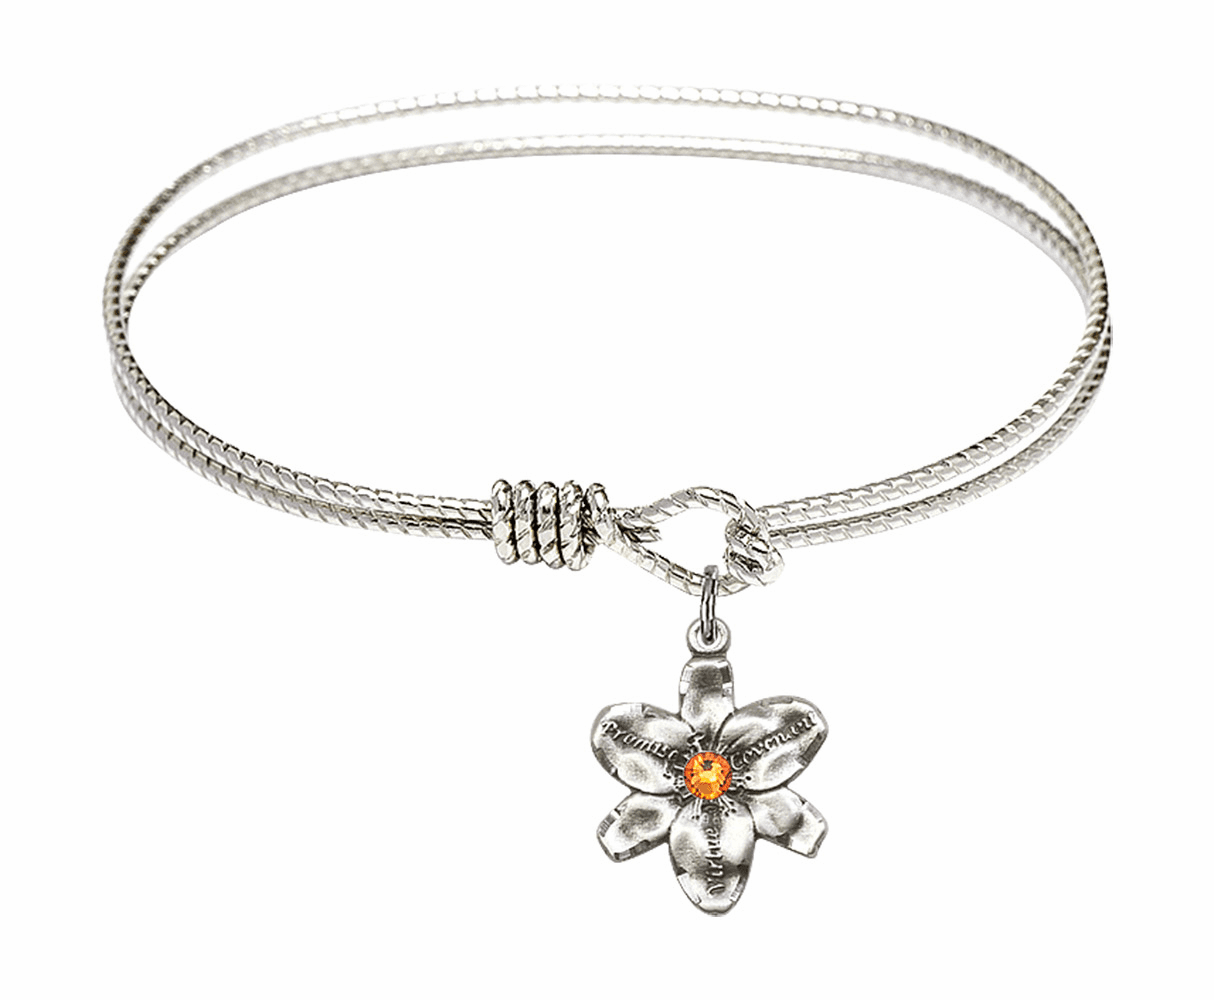 Textured Bangle Bracelet w/Topaz Flower Chastity Charm by Bliss Mfg